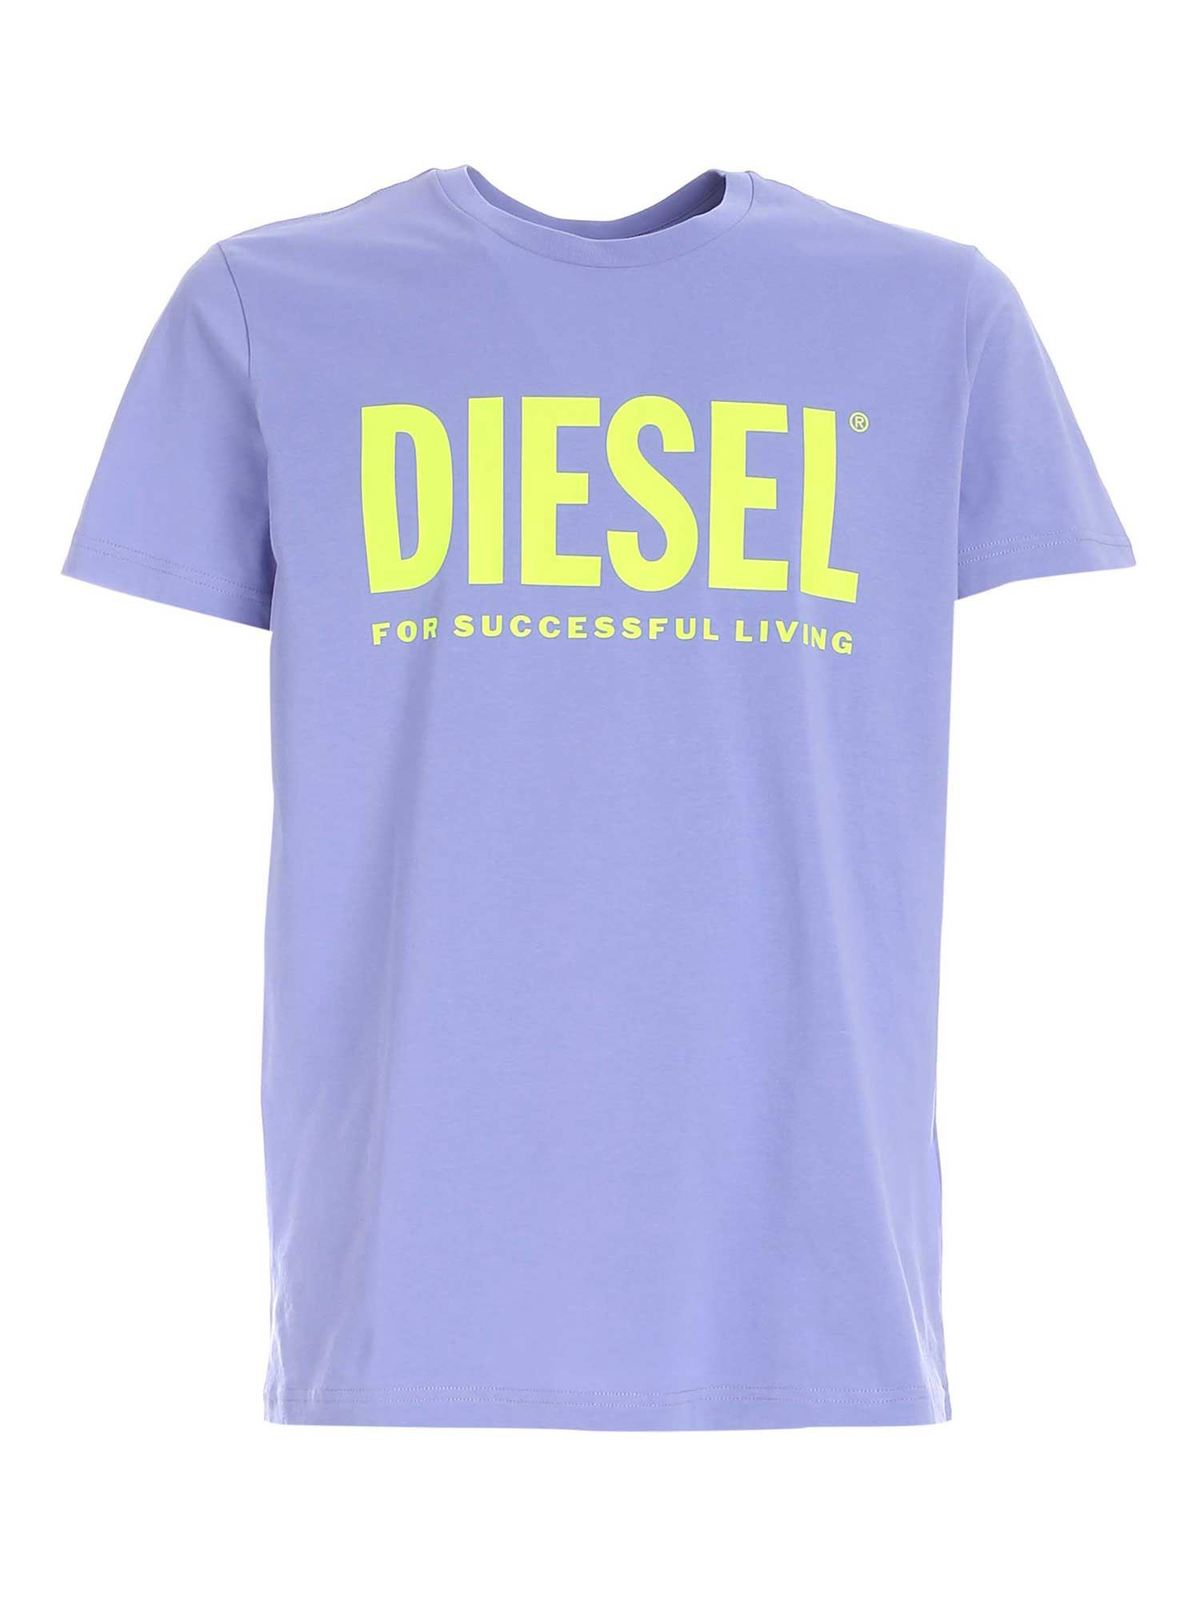 Diesel Cottons T-DIEGO T-SHIRT IN PURPLE AND GREEN